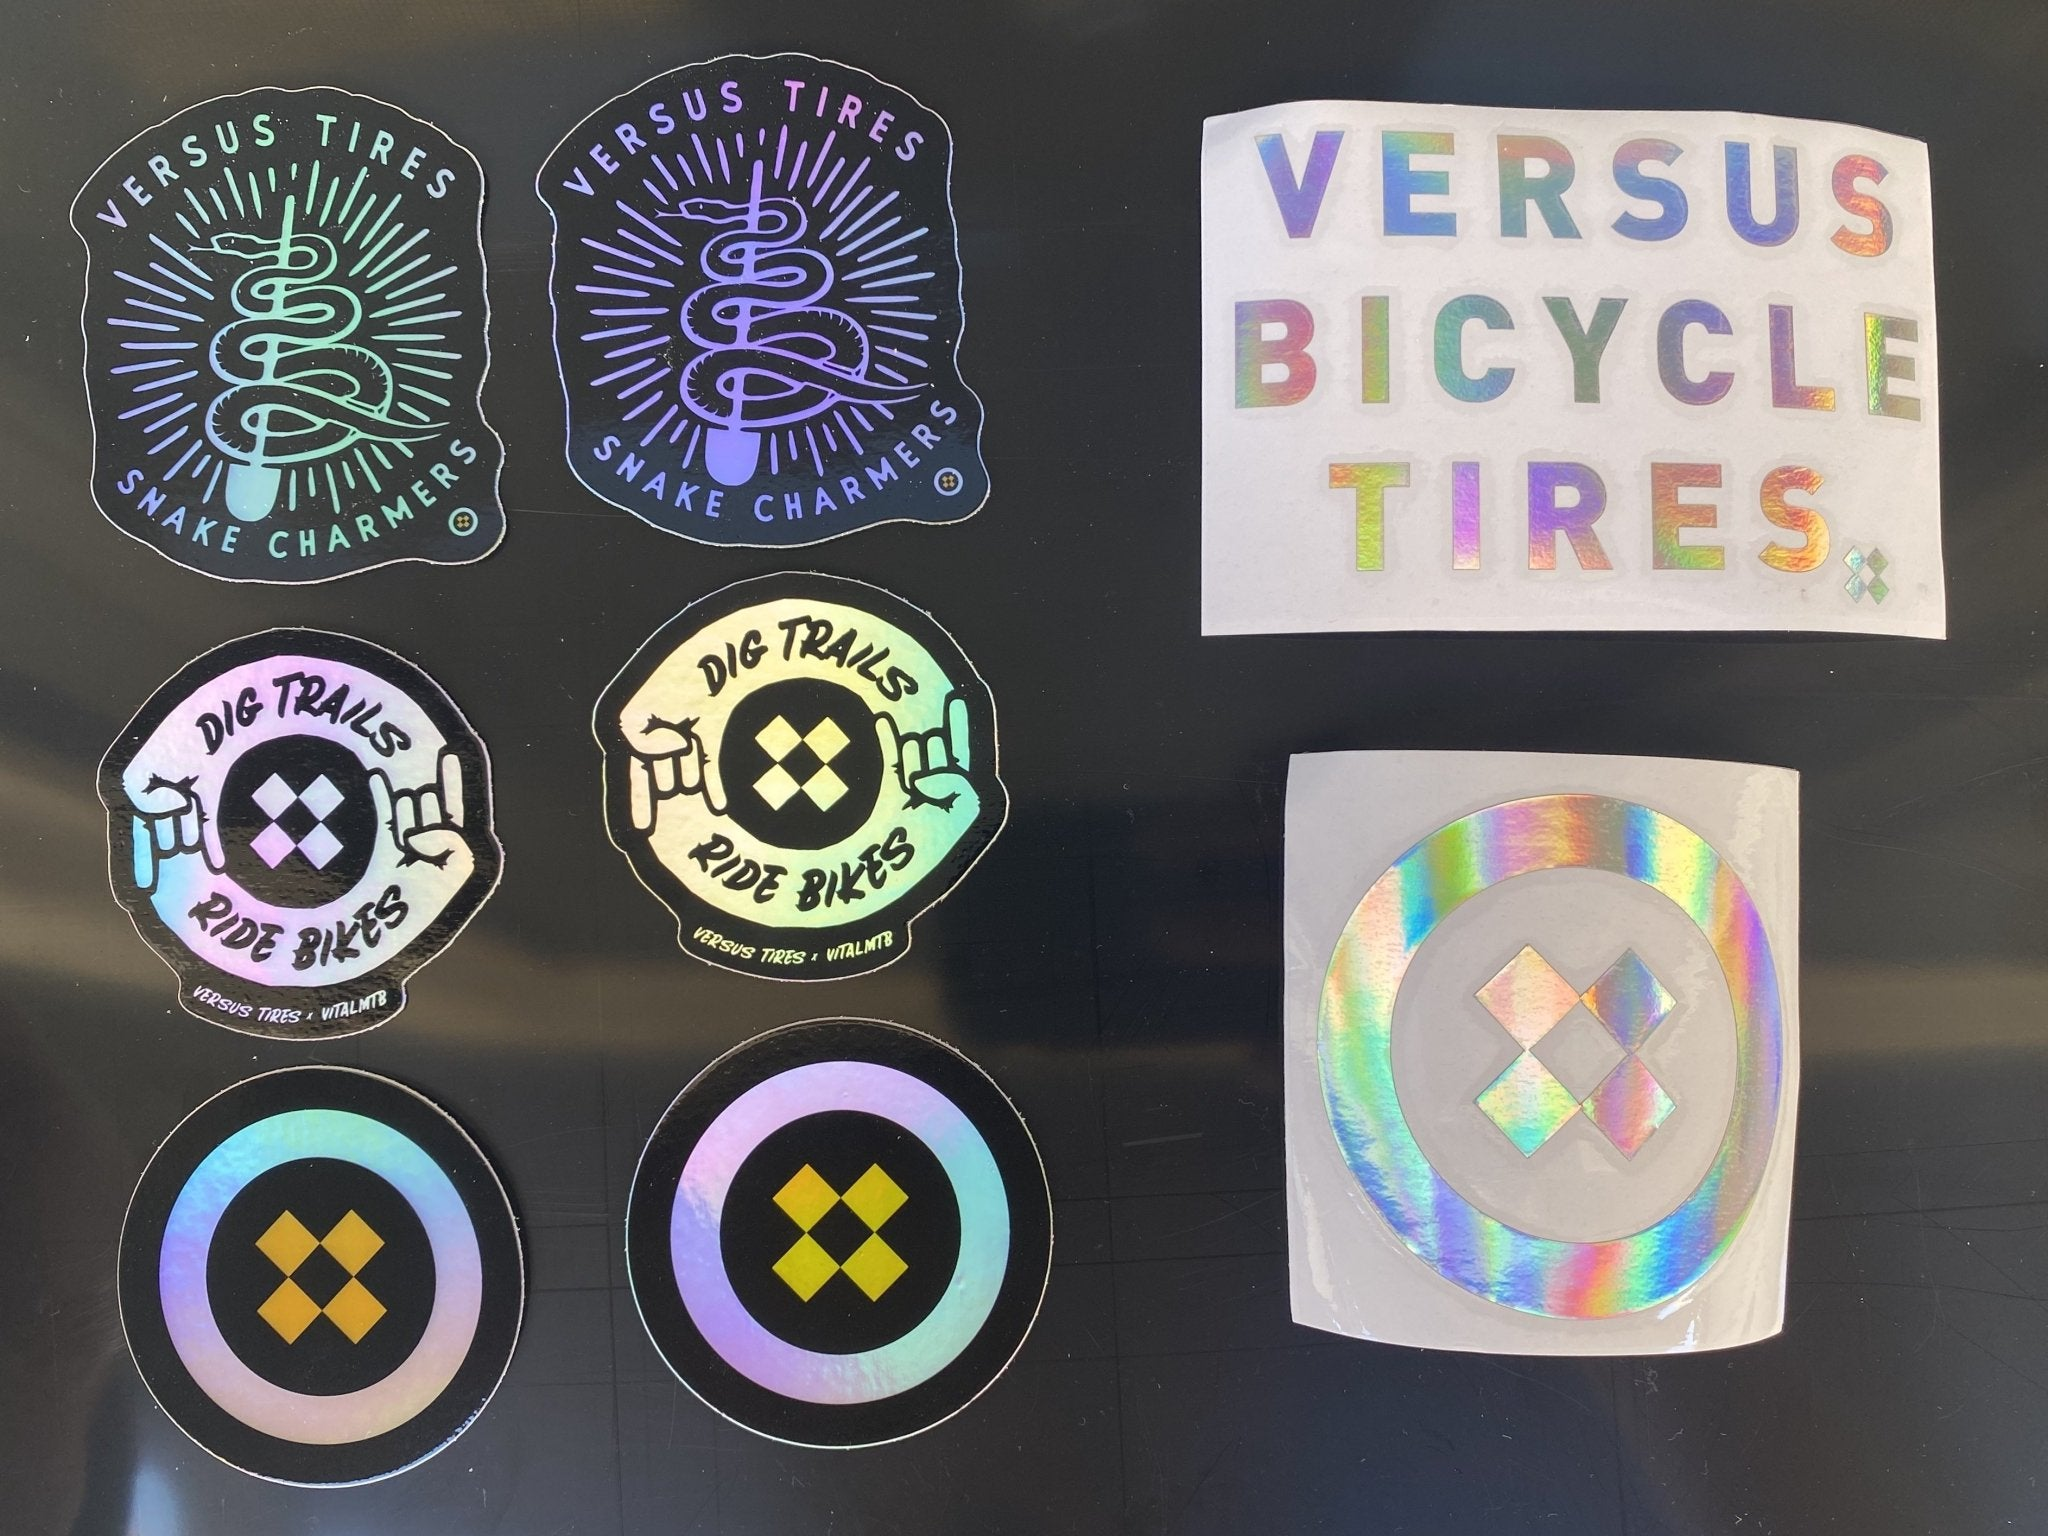 Versus // Holographic Sticker Pack (10 stickers) - Versus Bicycle Tires